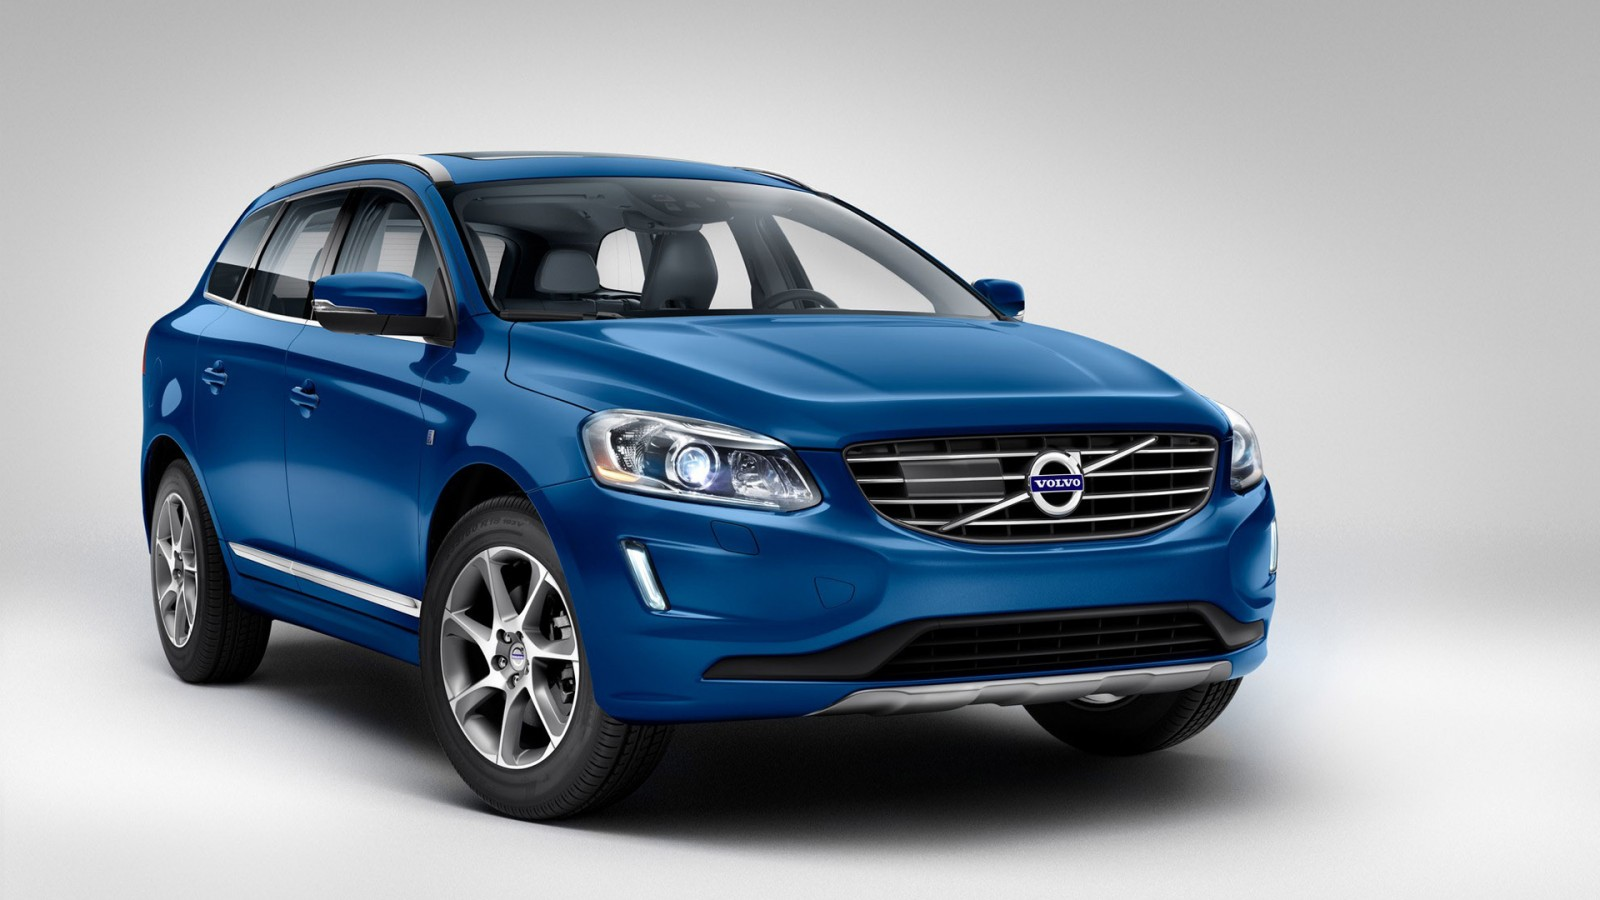 volvo ocean race xc60 limited edition wallpaper hd car. Black Bedroom Furniture Sets. Home Design Ideas